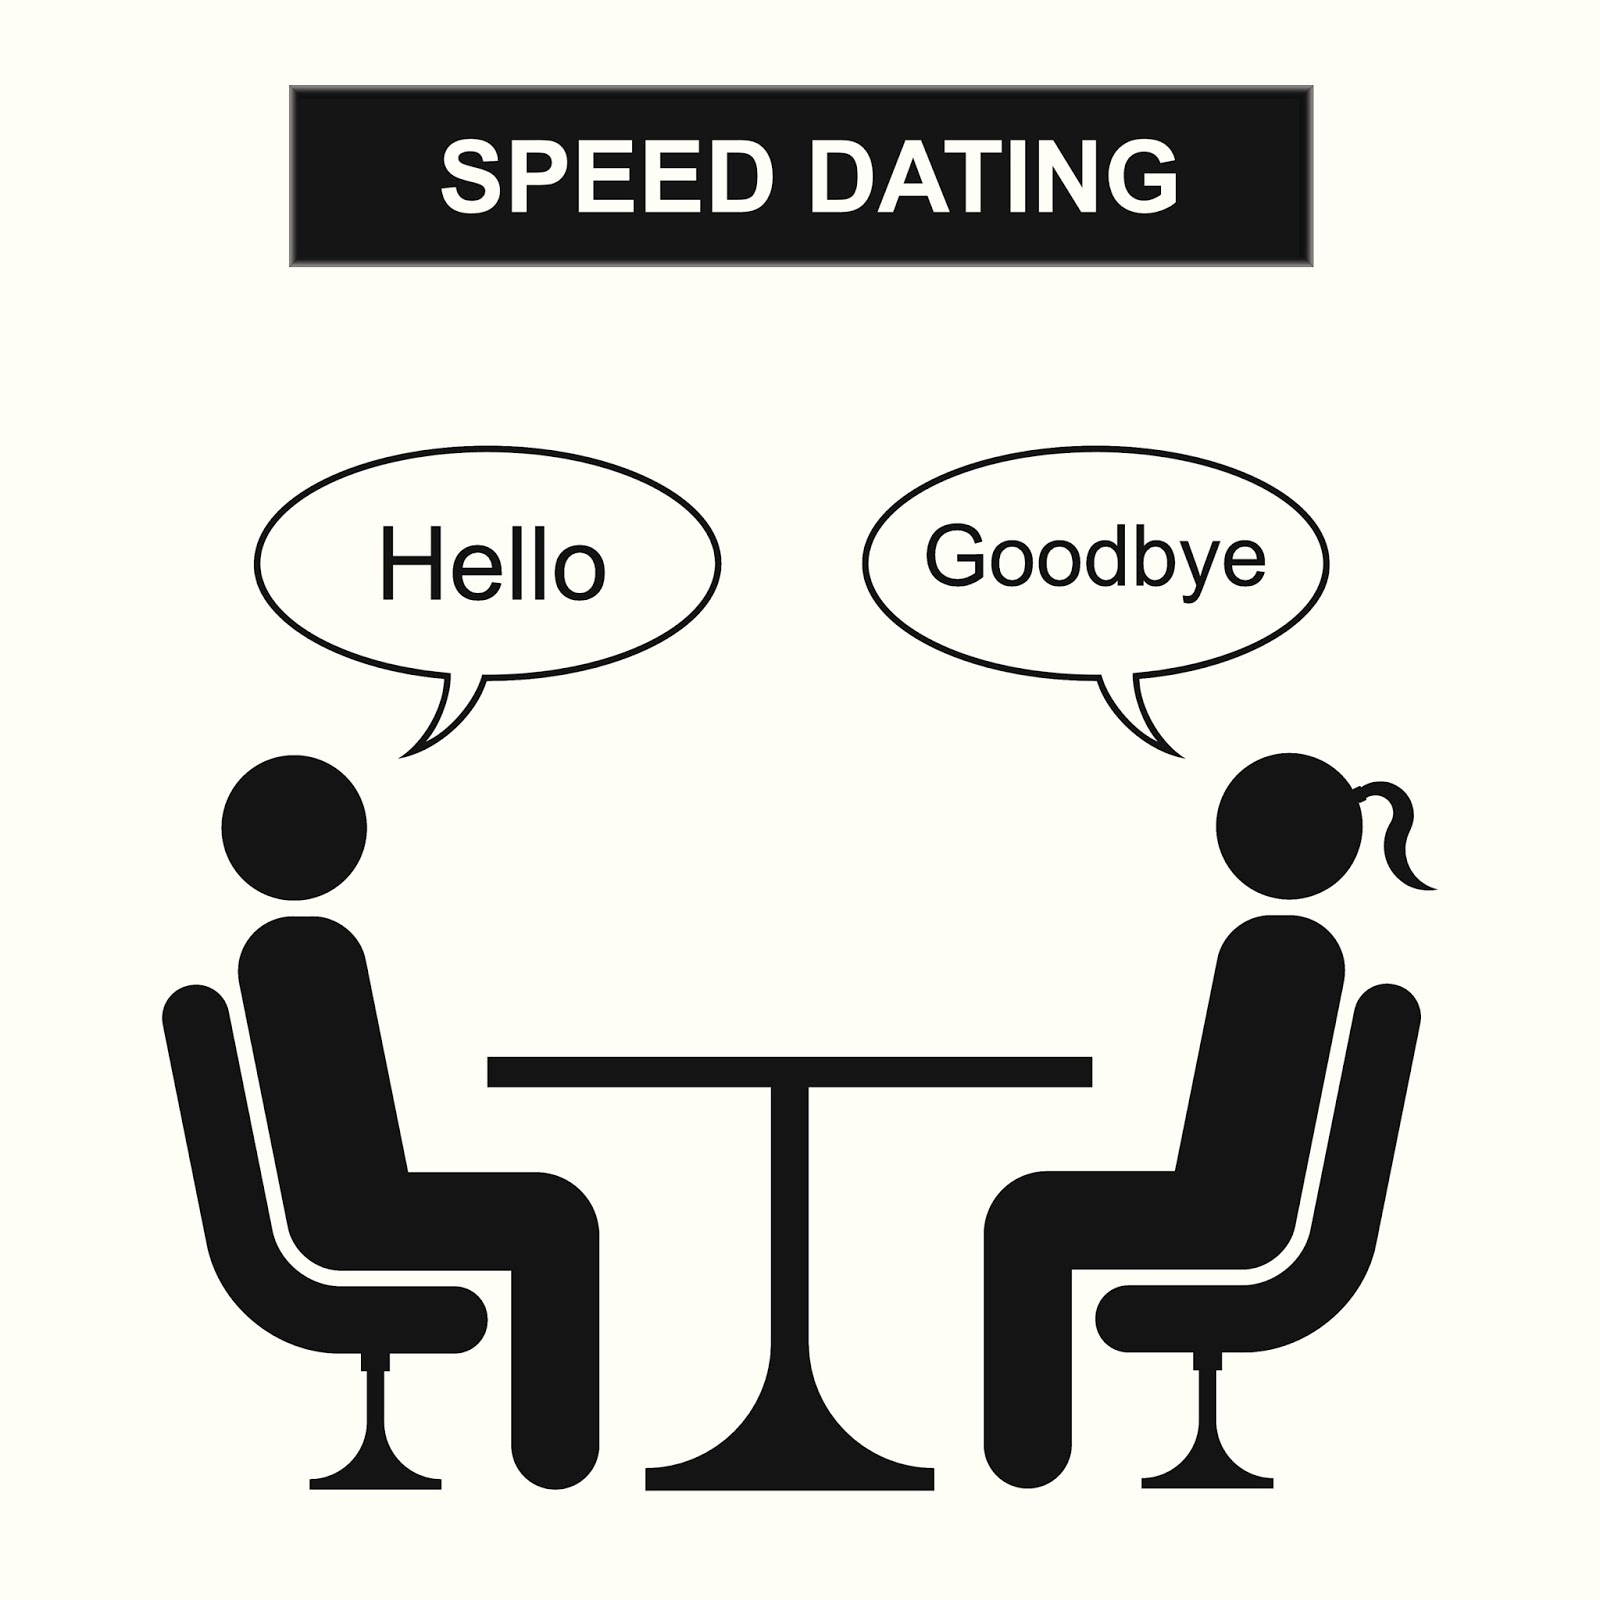 Asian singles speed dating nyc